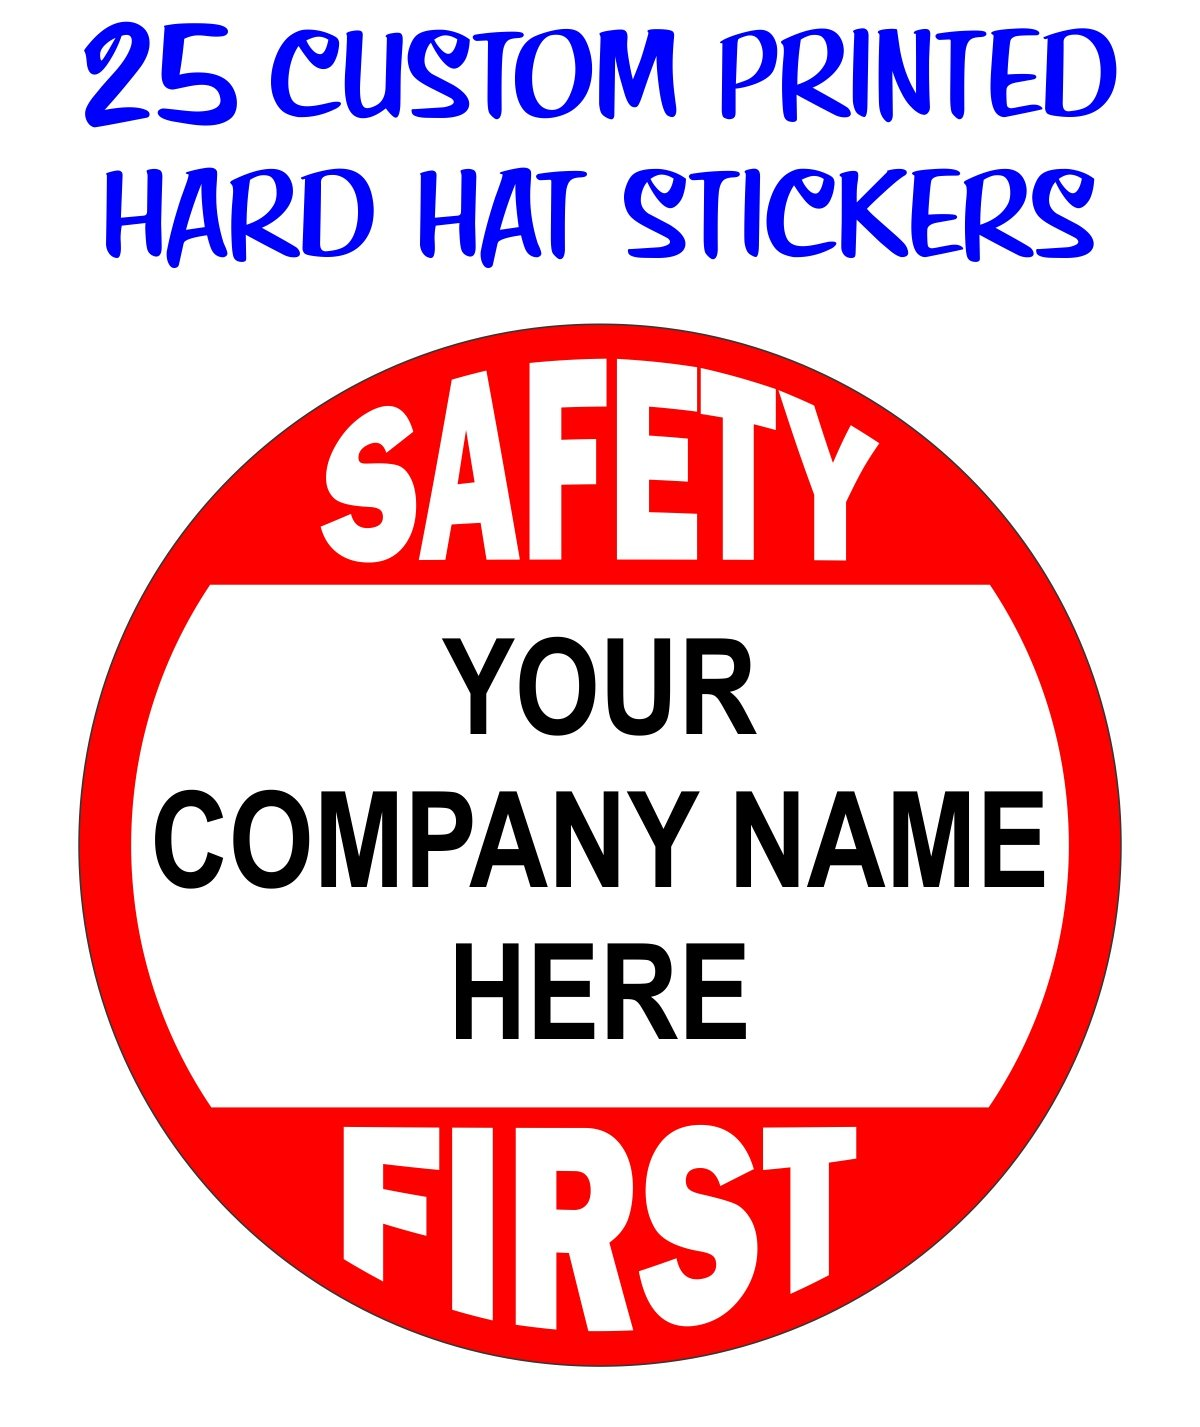 (25) Custom Printed Safety First Hard Hat Stickers | Add Your Personalized Company - Business Name | Weatherproof Vinyl Decals Labels Badges by Jay Graphics